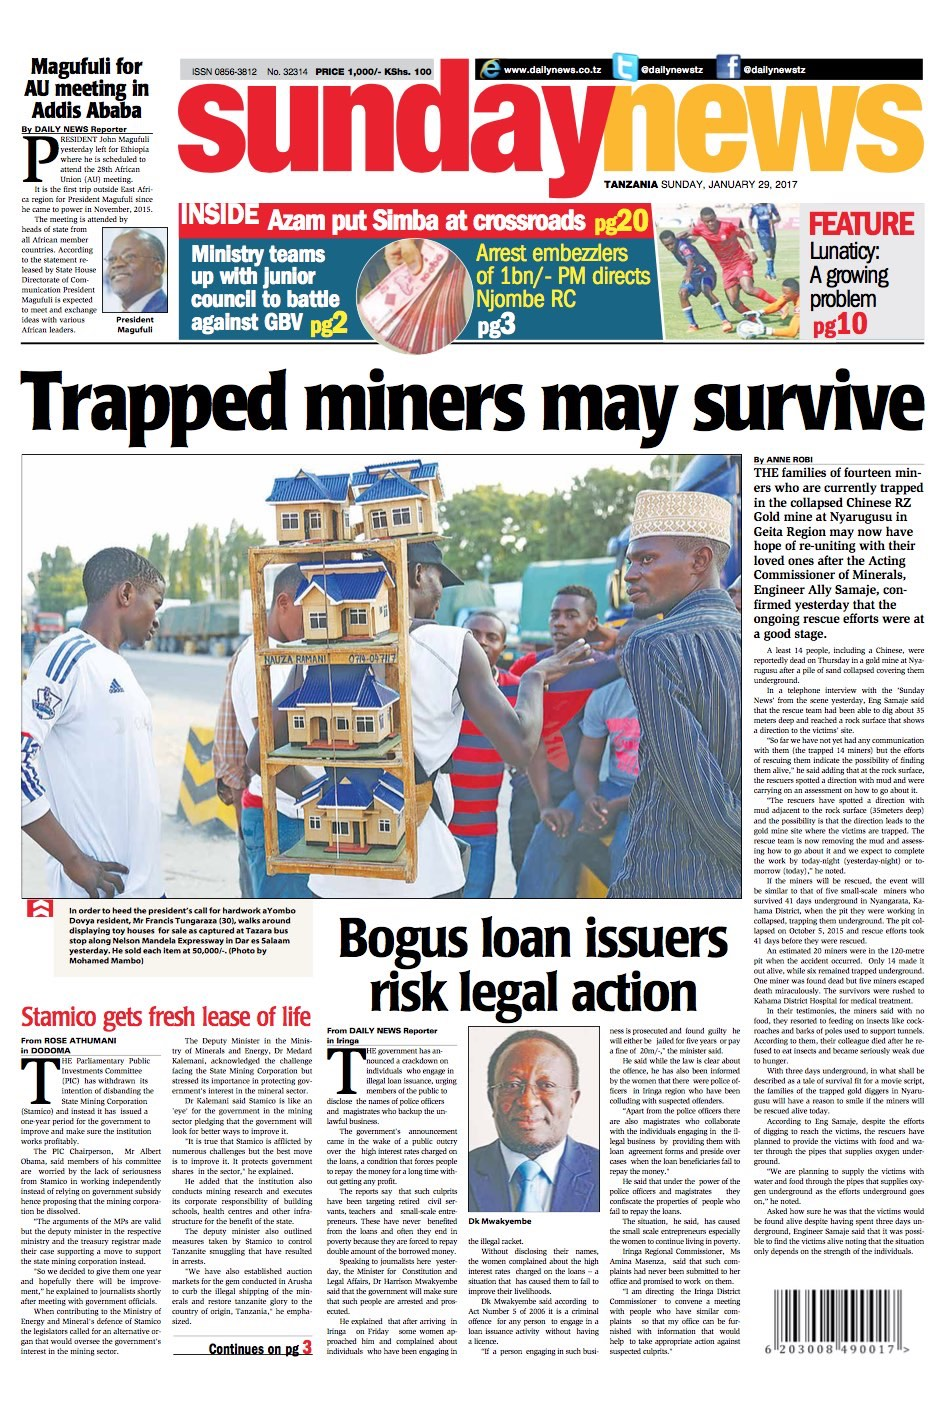 TRAPPED MINERS MAY SURVIVE